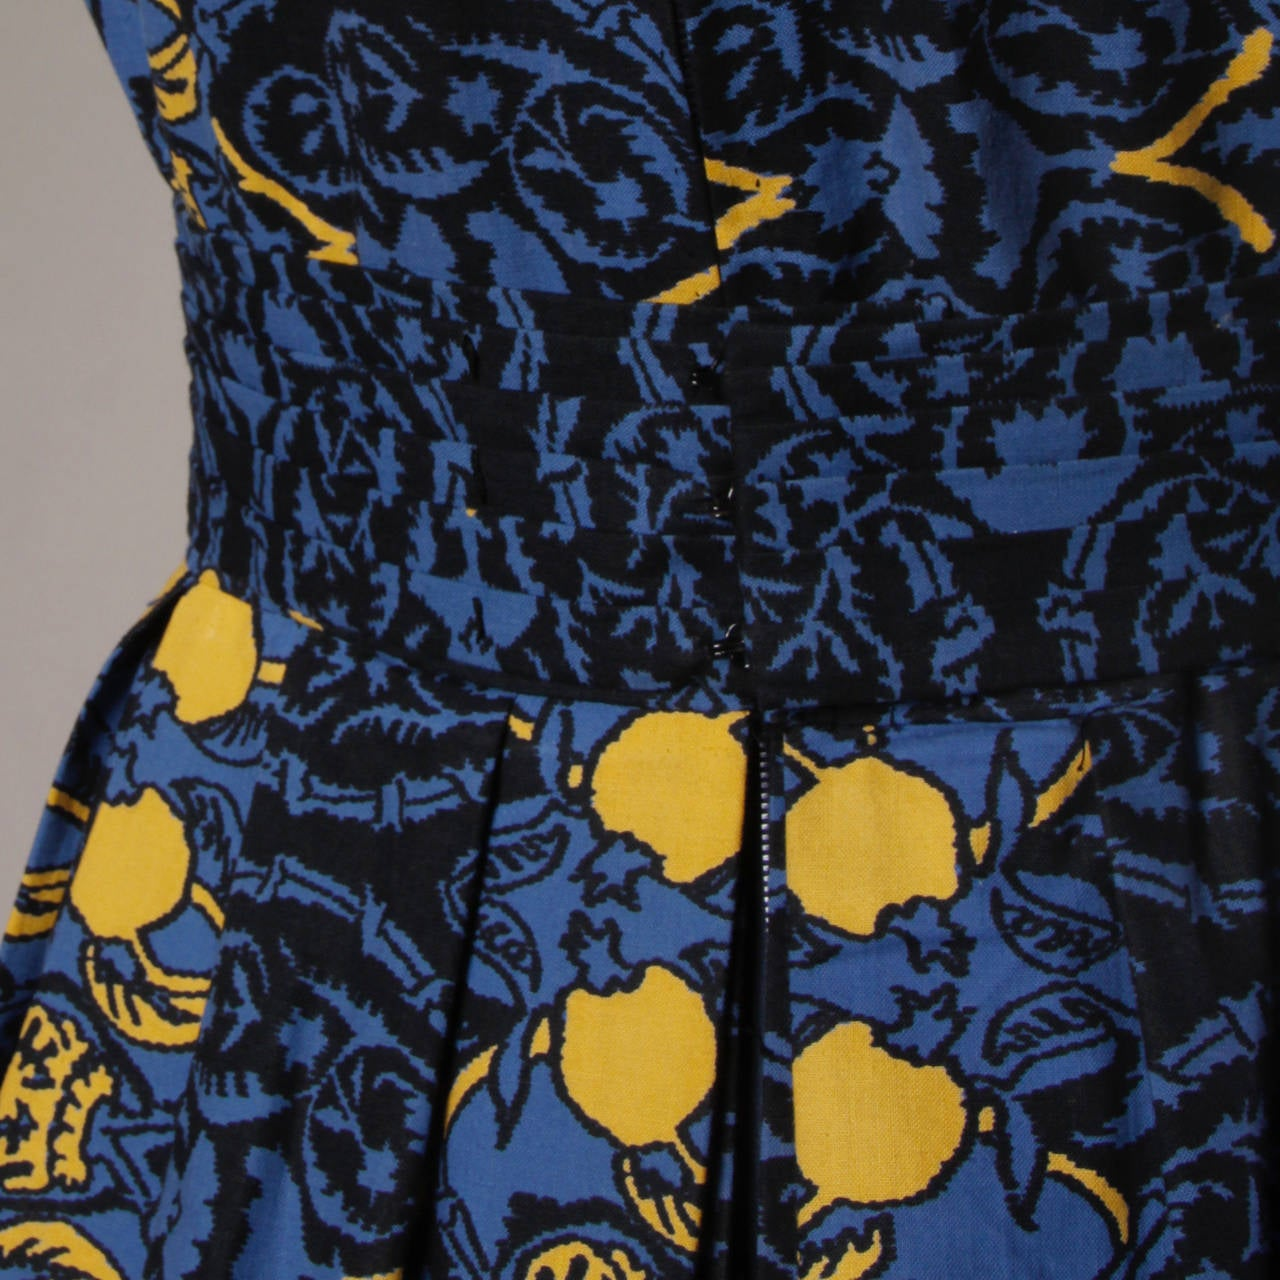 1950s Vintage French Custom Provincial Printed Cotton Dress For Sale 2